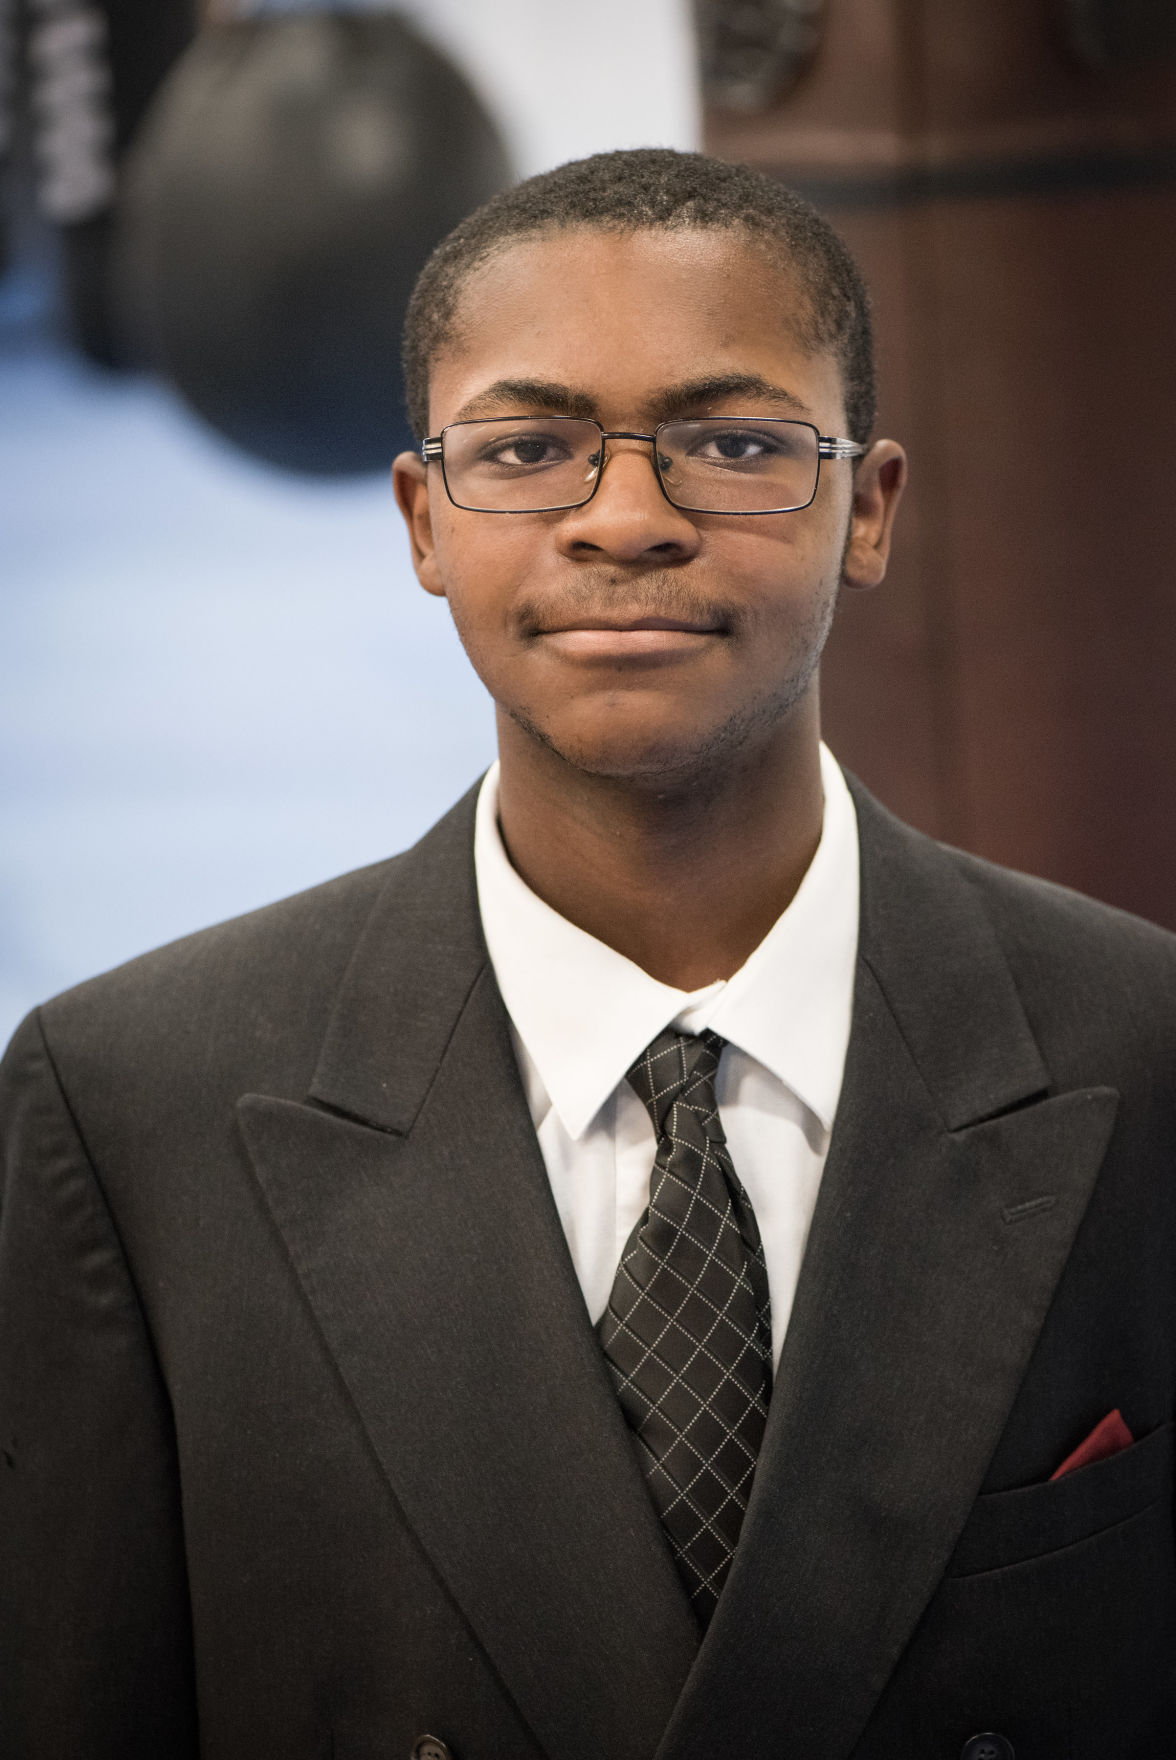 James Irwin sophomore wins Boys & Girls Club Youth of the Year award